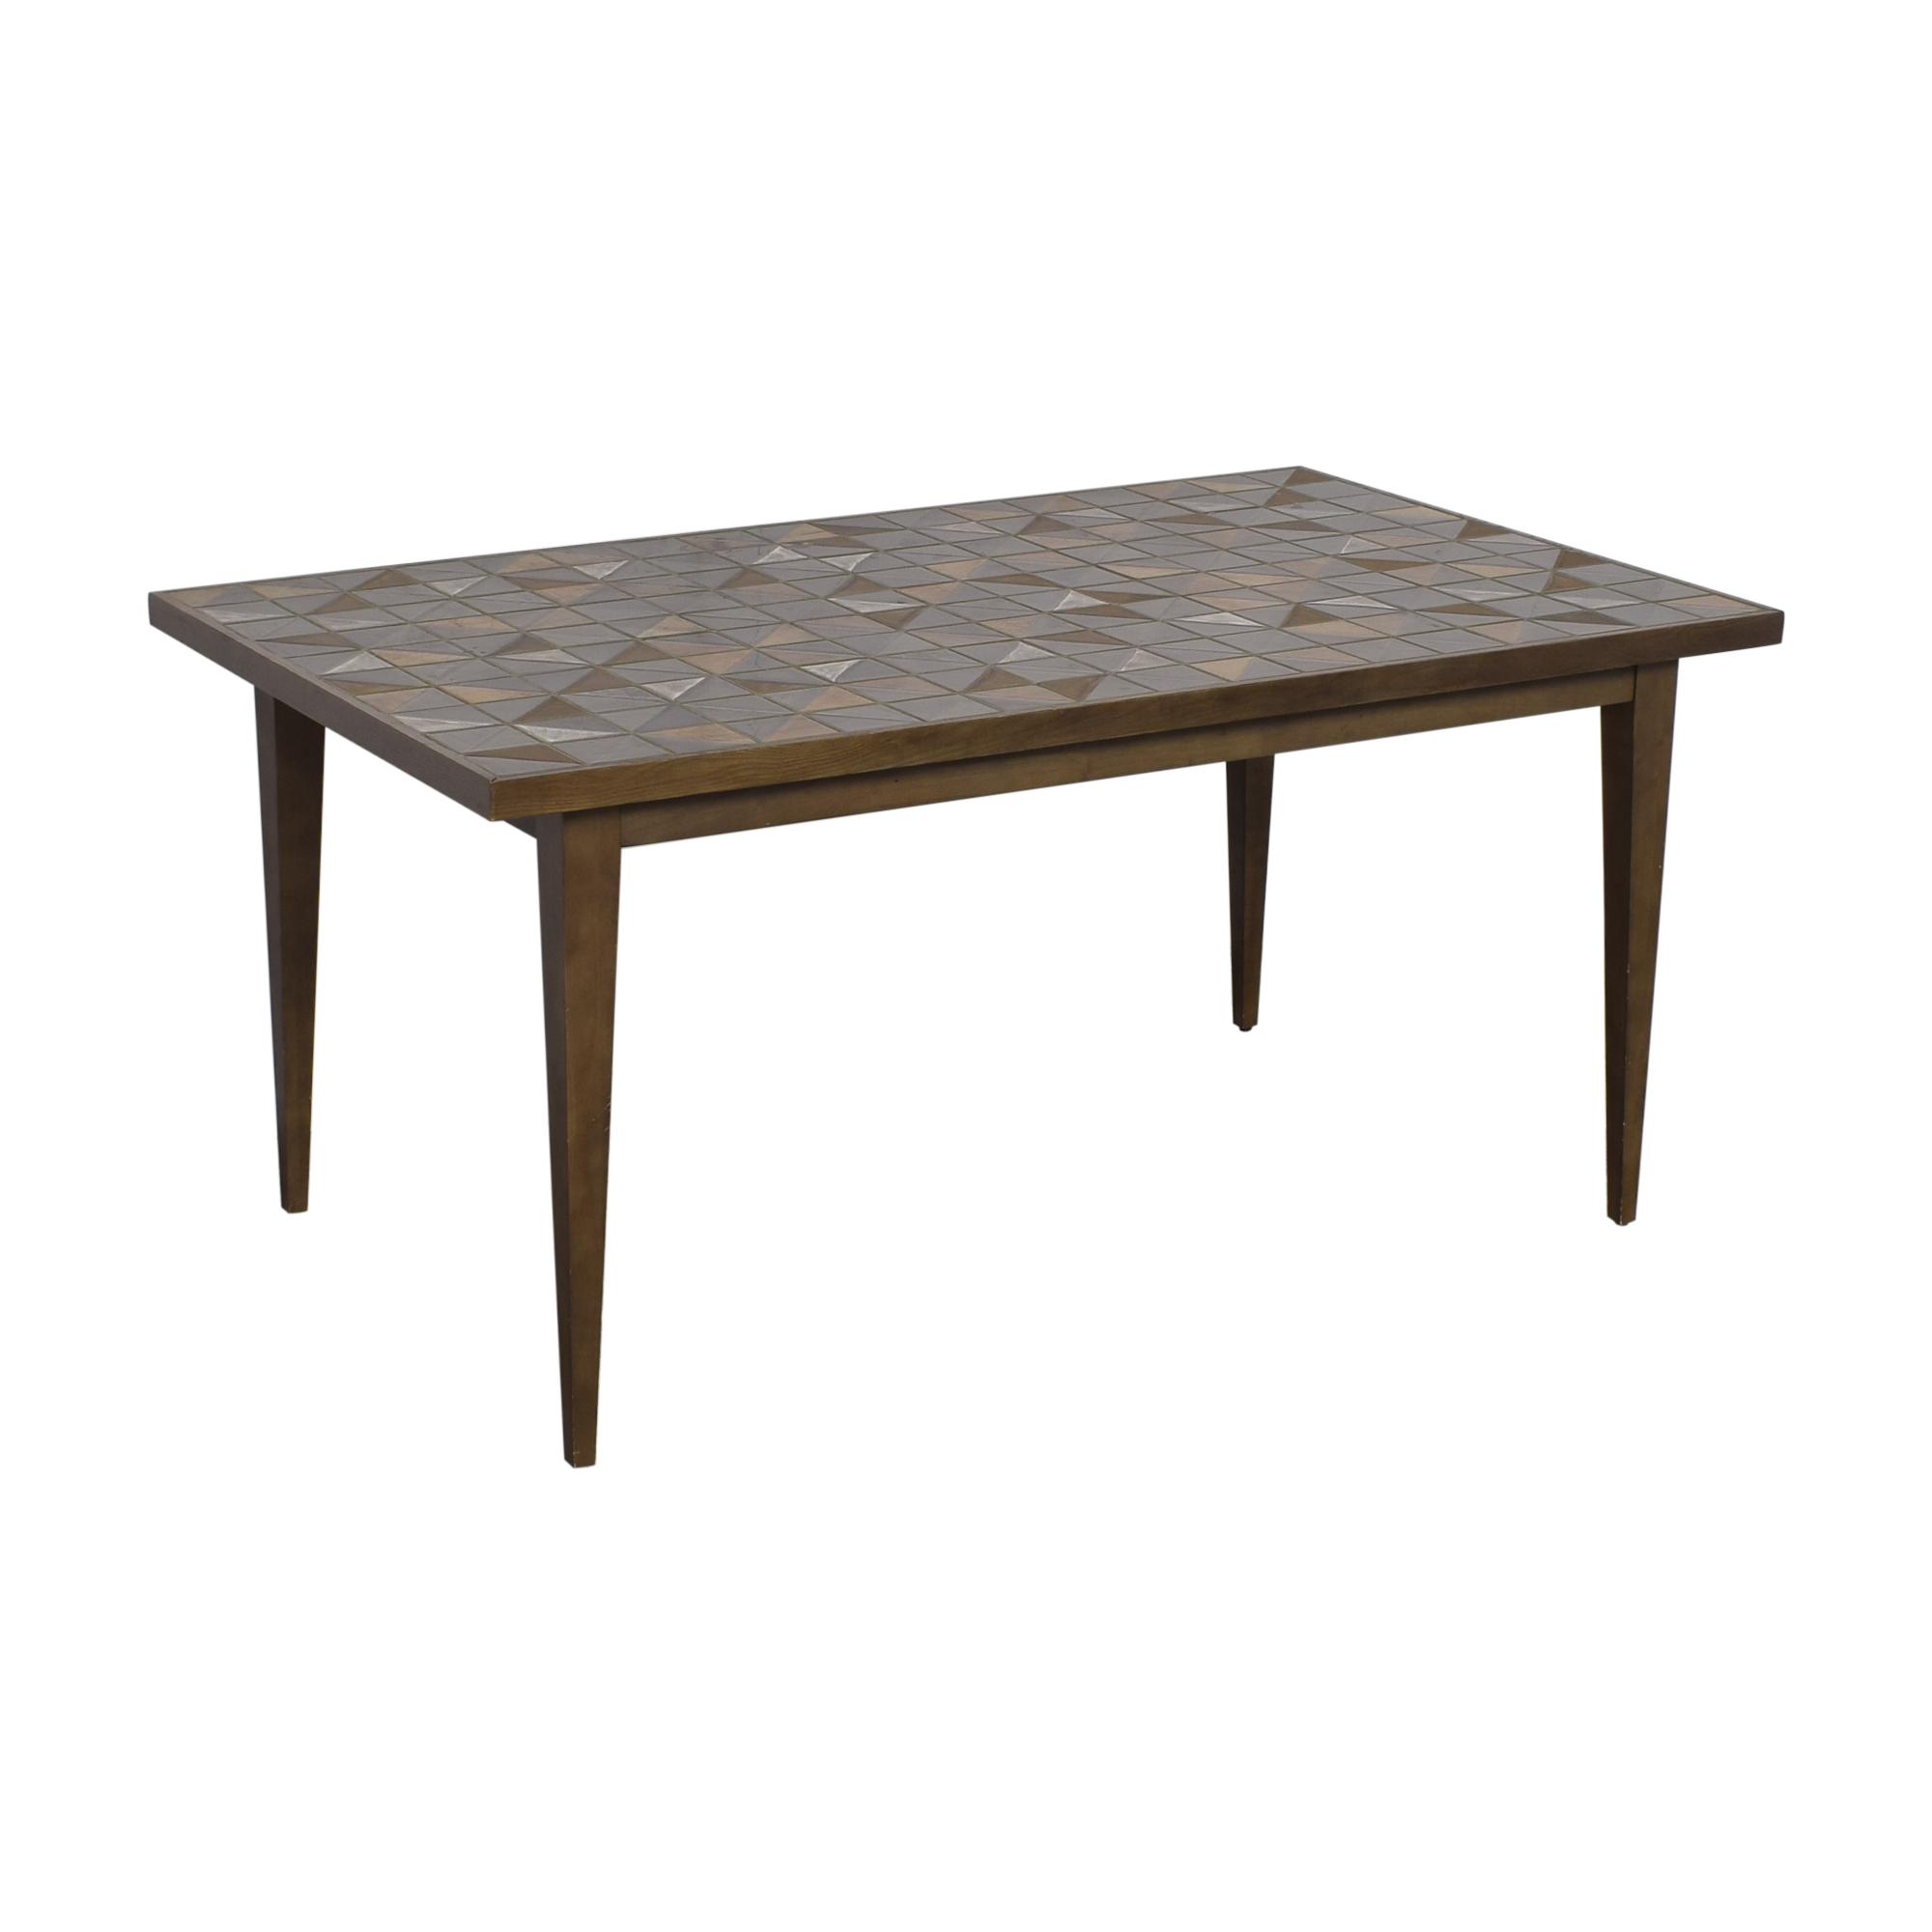 West Elm Lubna Chowdhary Tiled Dining Table / Dinner Tables